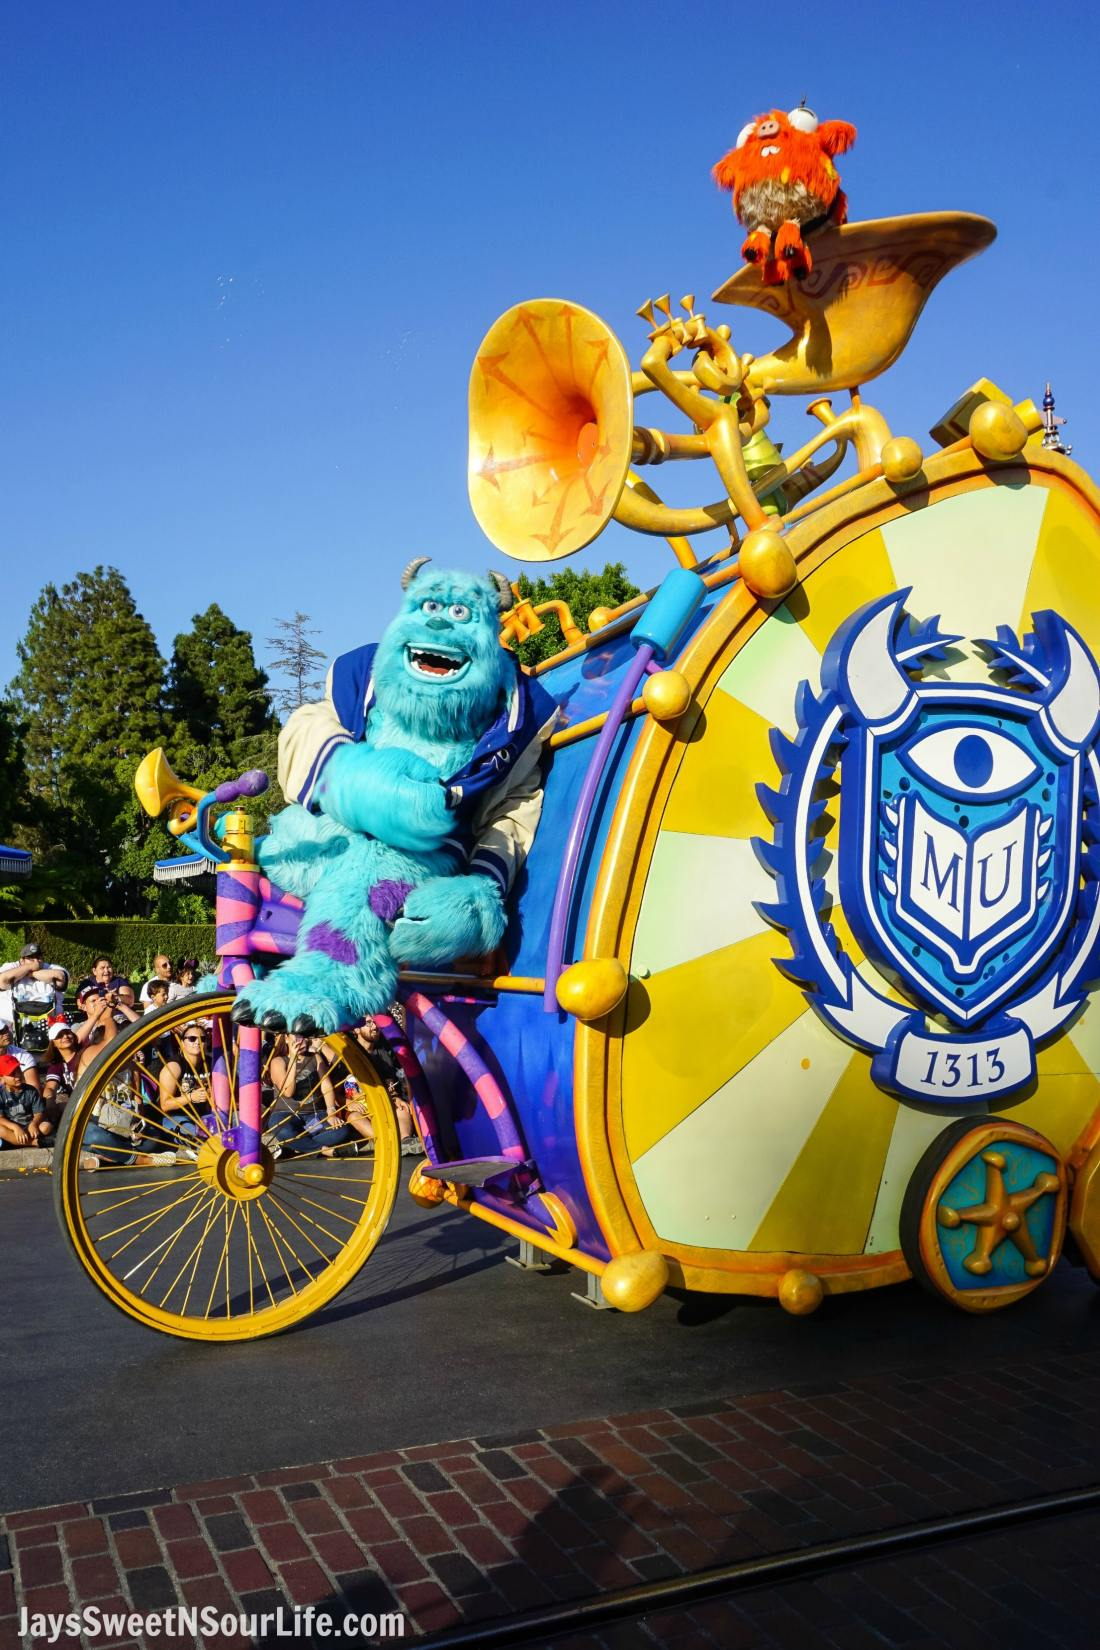 Pixar Play Parade at Disneyland Toy Story Float. Pixar Fest at Disneyland runs from April 13 through September 3rd.